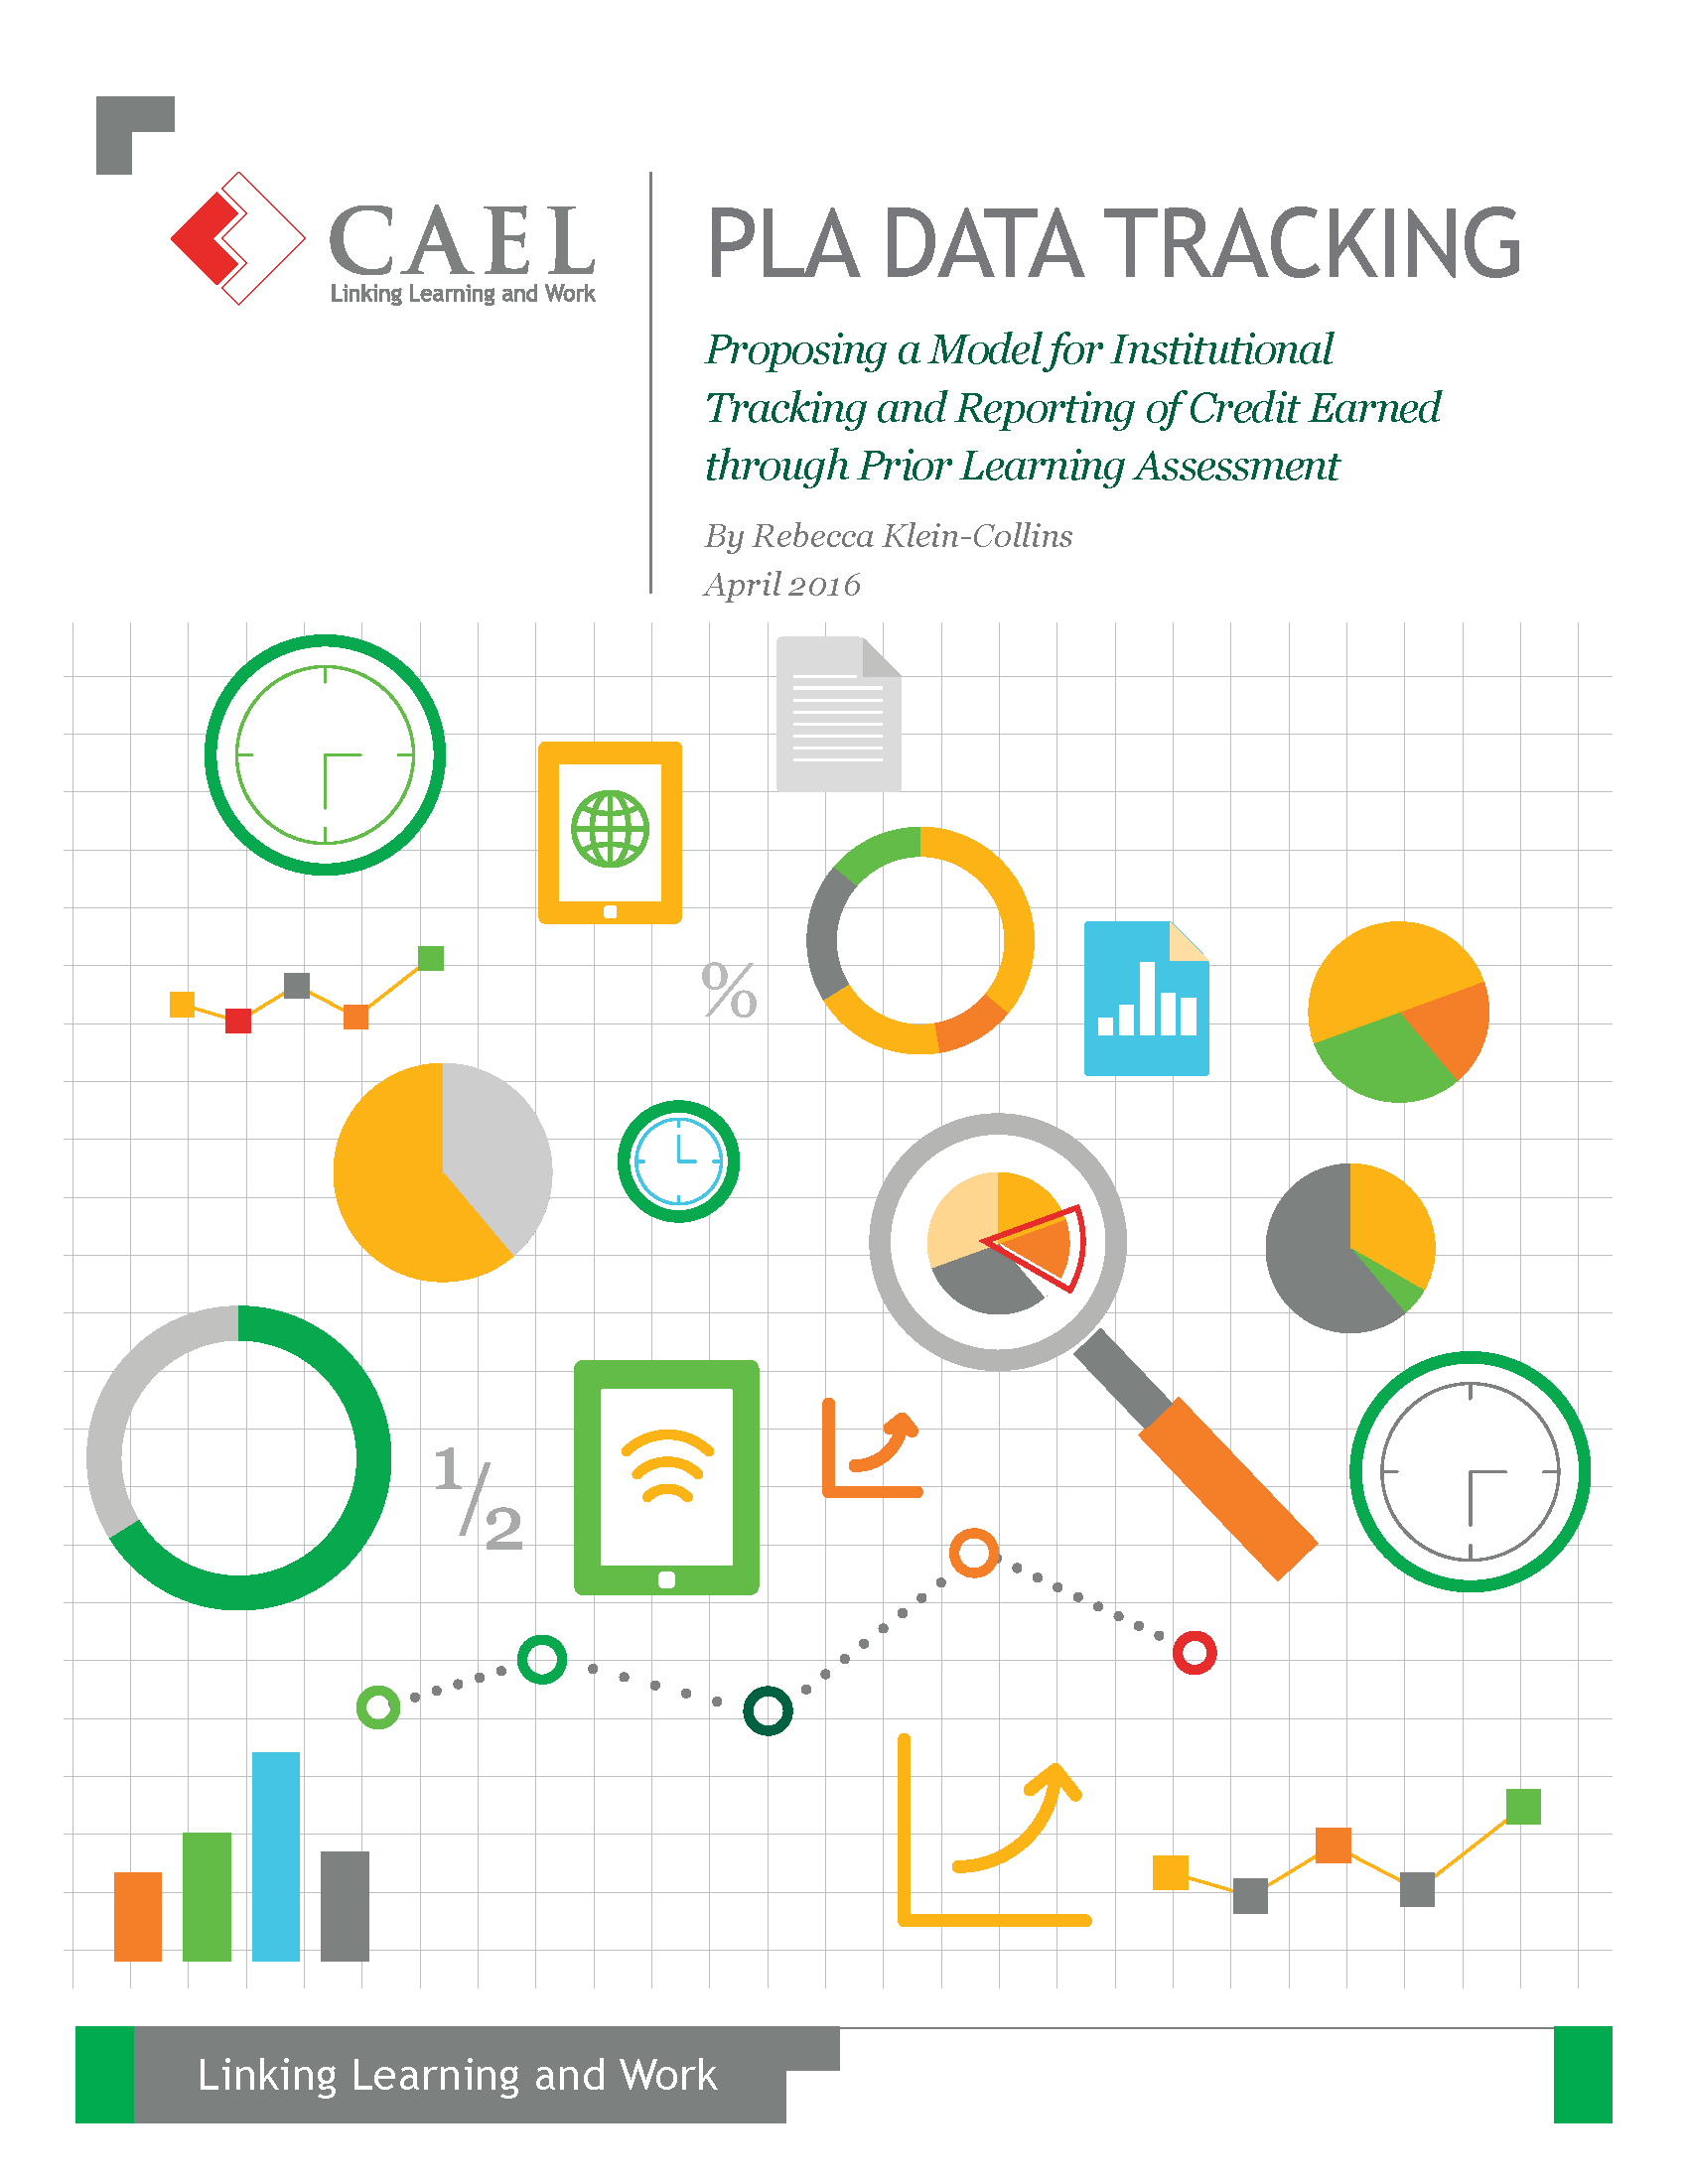 PLA data tracking - proposing a model for institutional tracking and reporting of credit earned through prior learning assessment